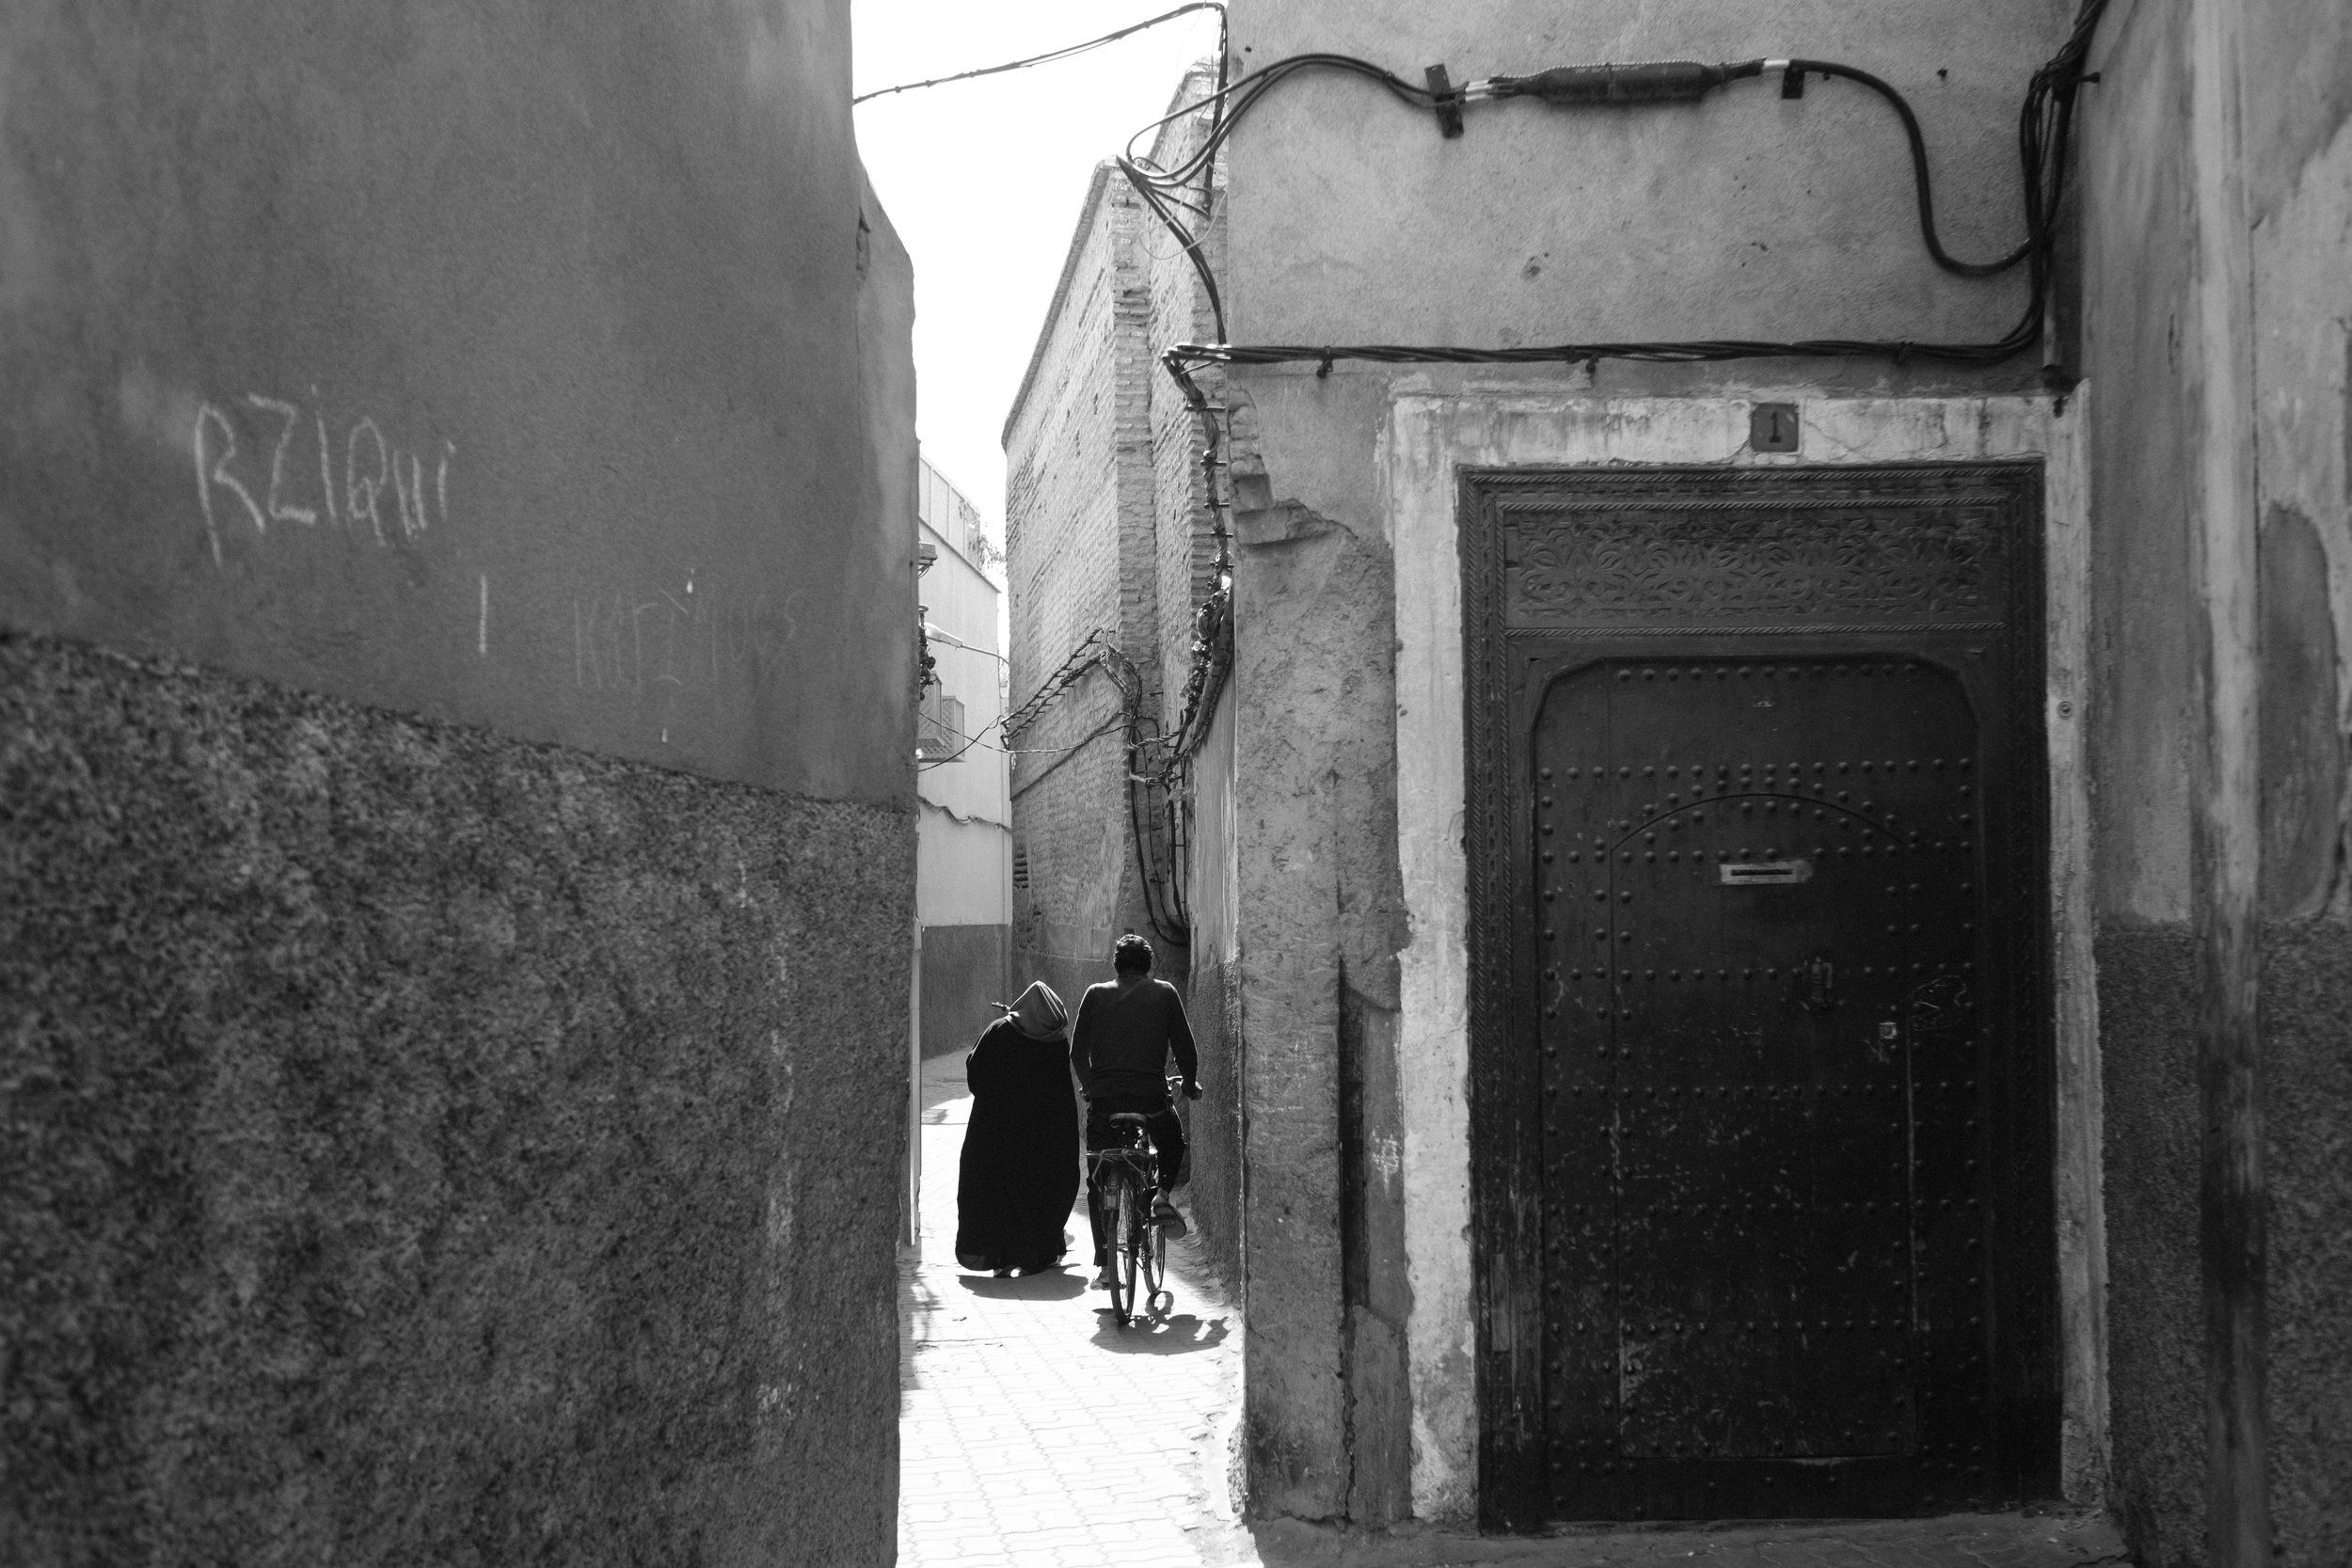 A woman carries goods and a man cycles through a narrow alley in the Medina District of Marrakech Morocco